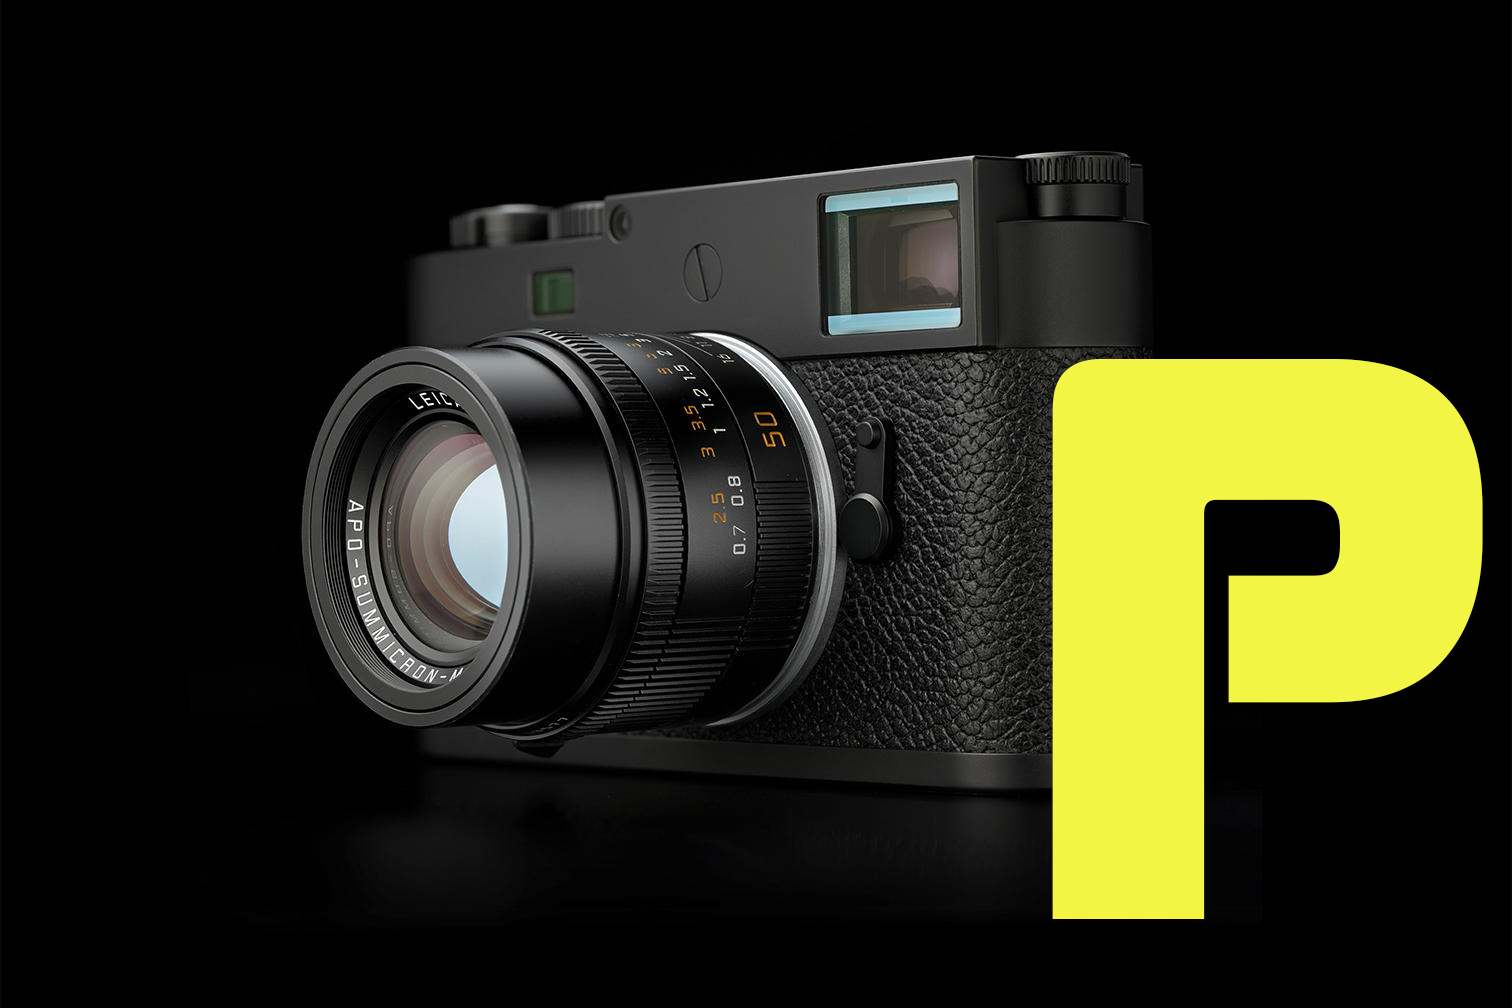 The new Leica M10-P is Here  The quietest mechanical shutter of any